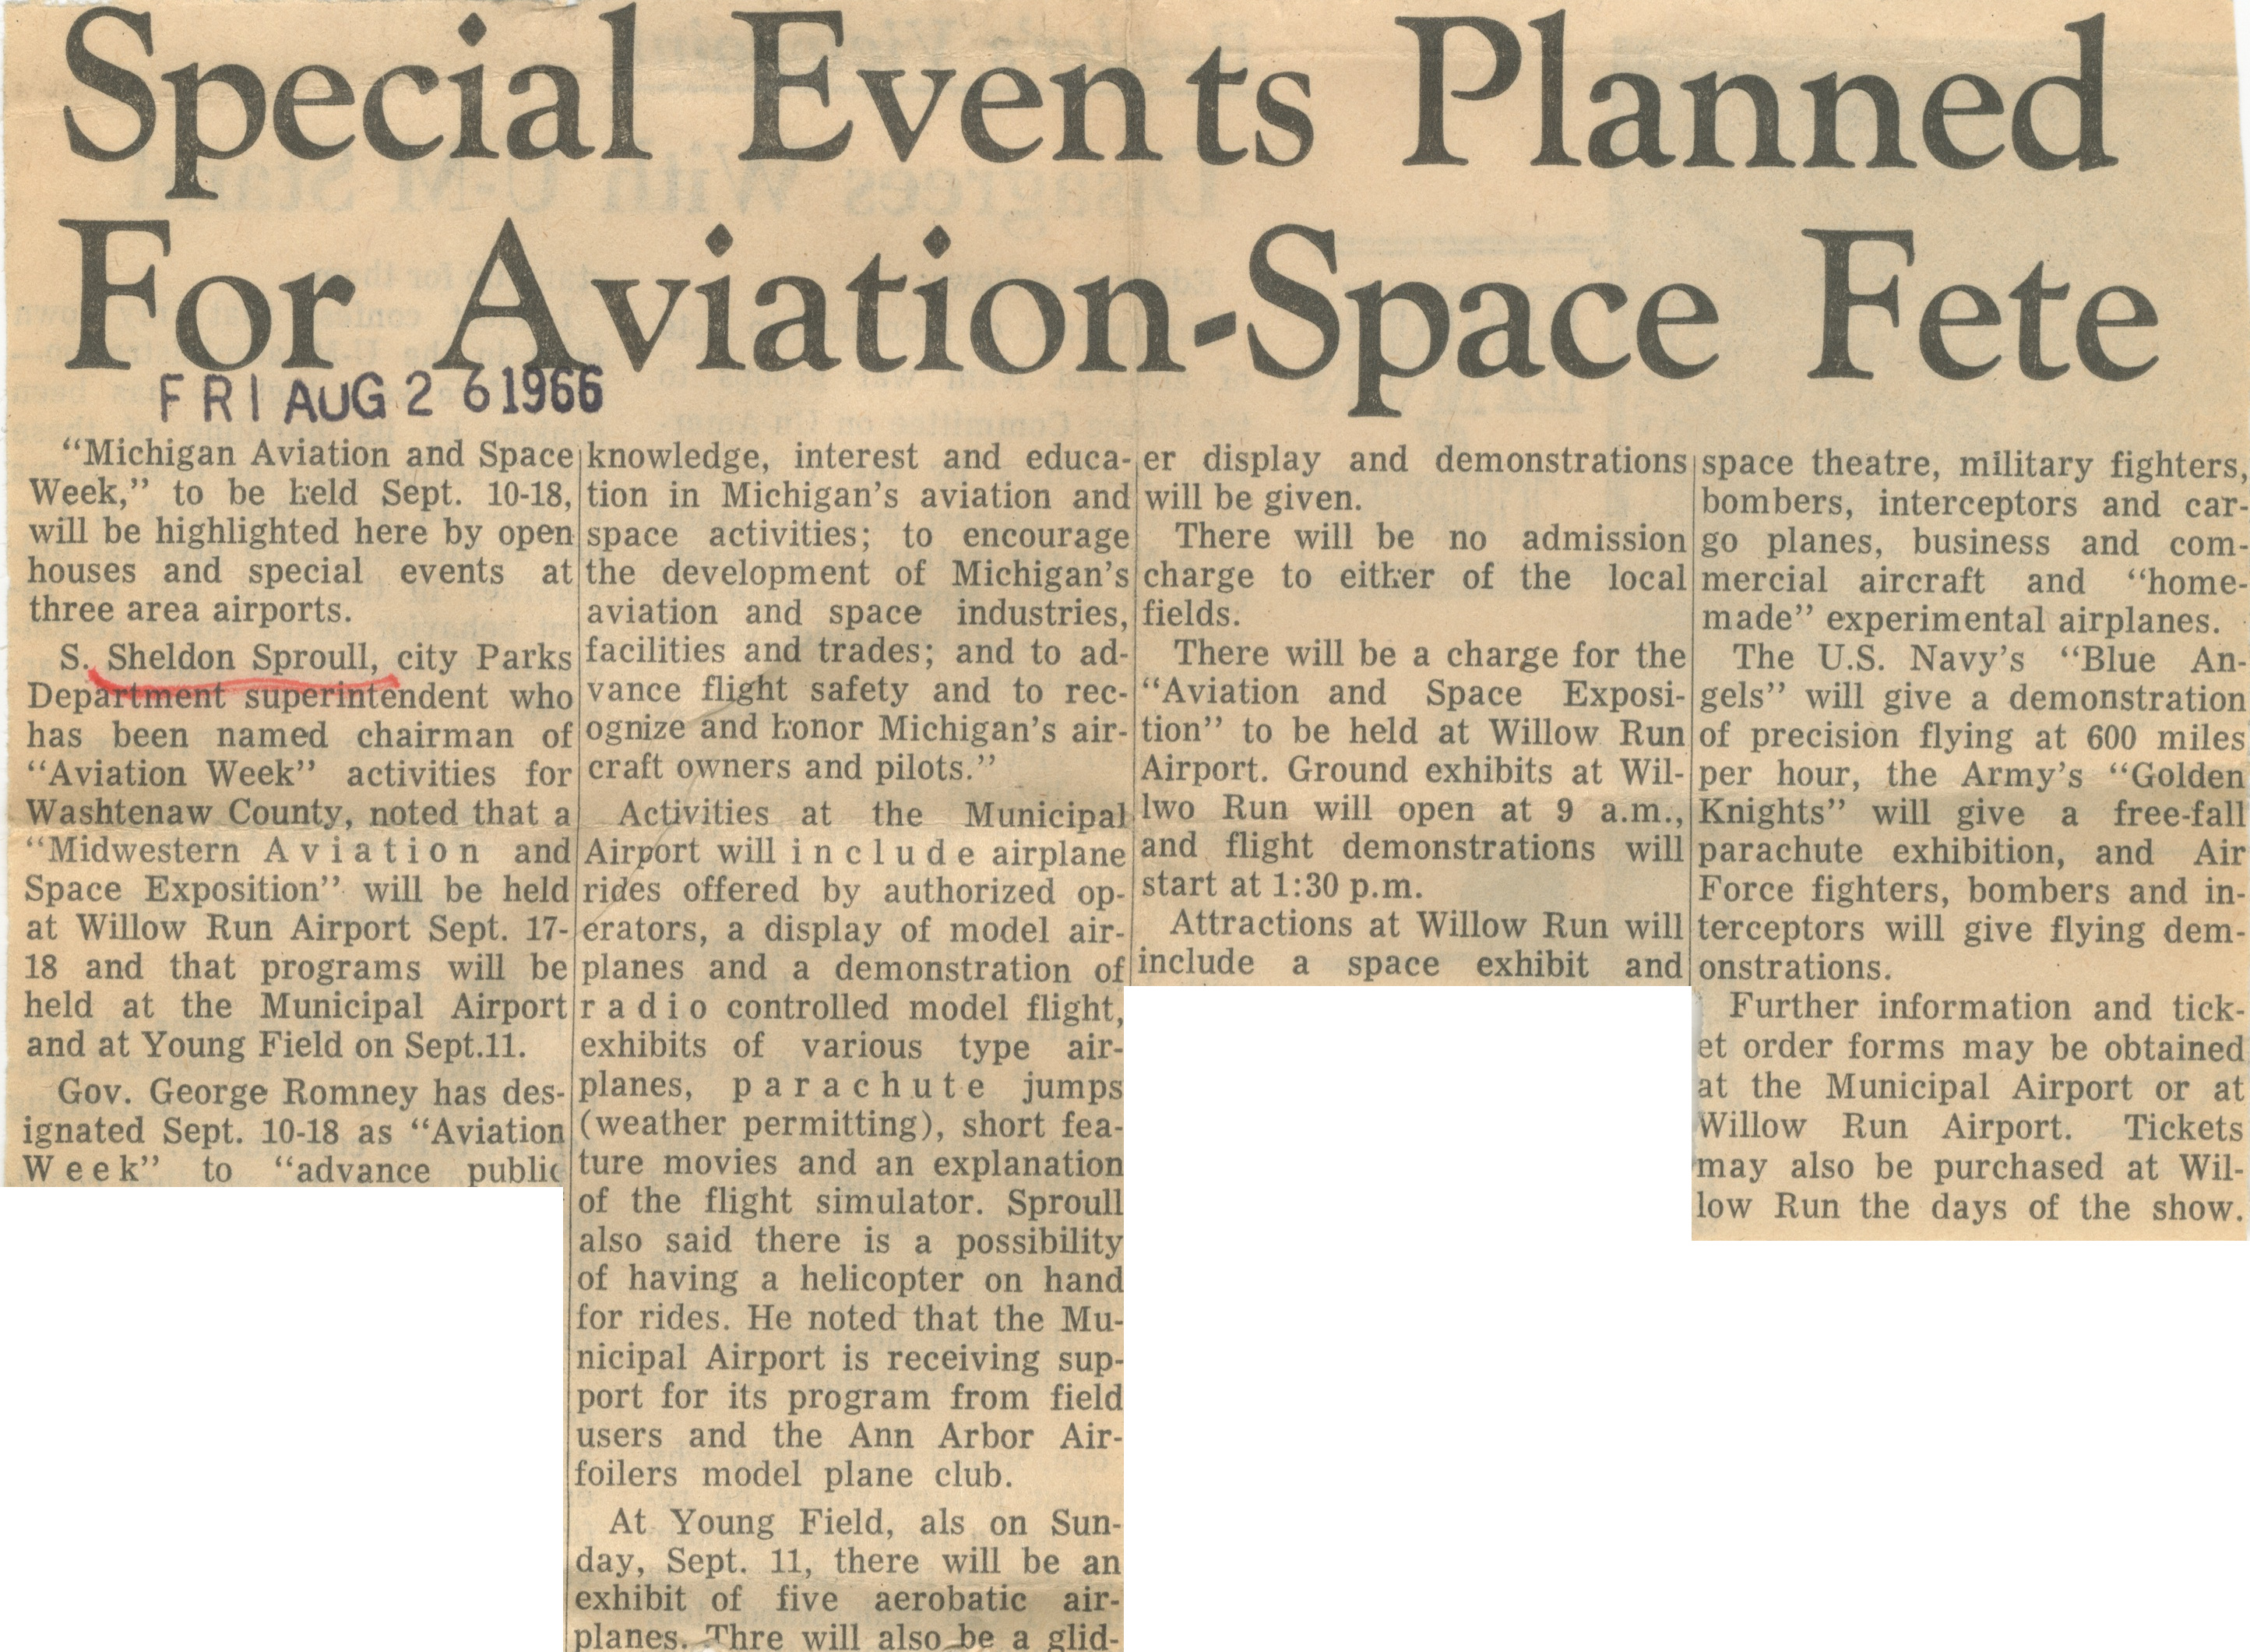 Special Events Planned For Aviation-Space Fete image